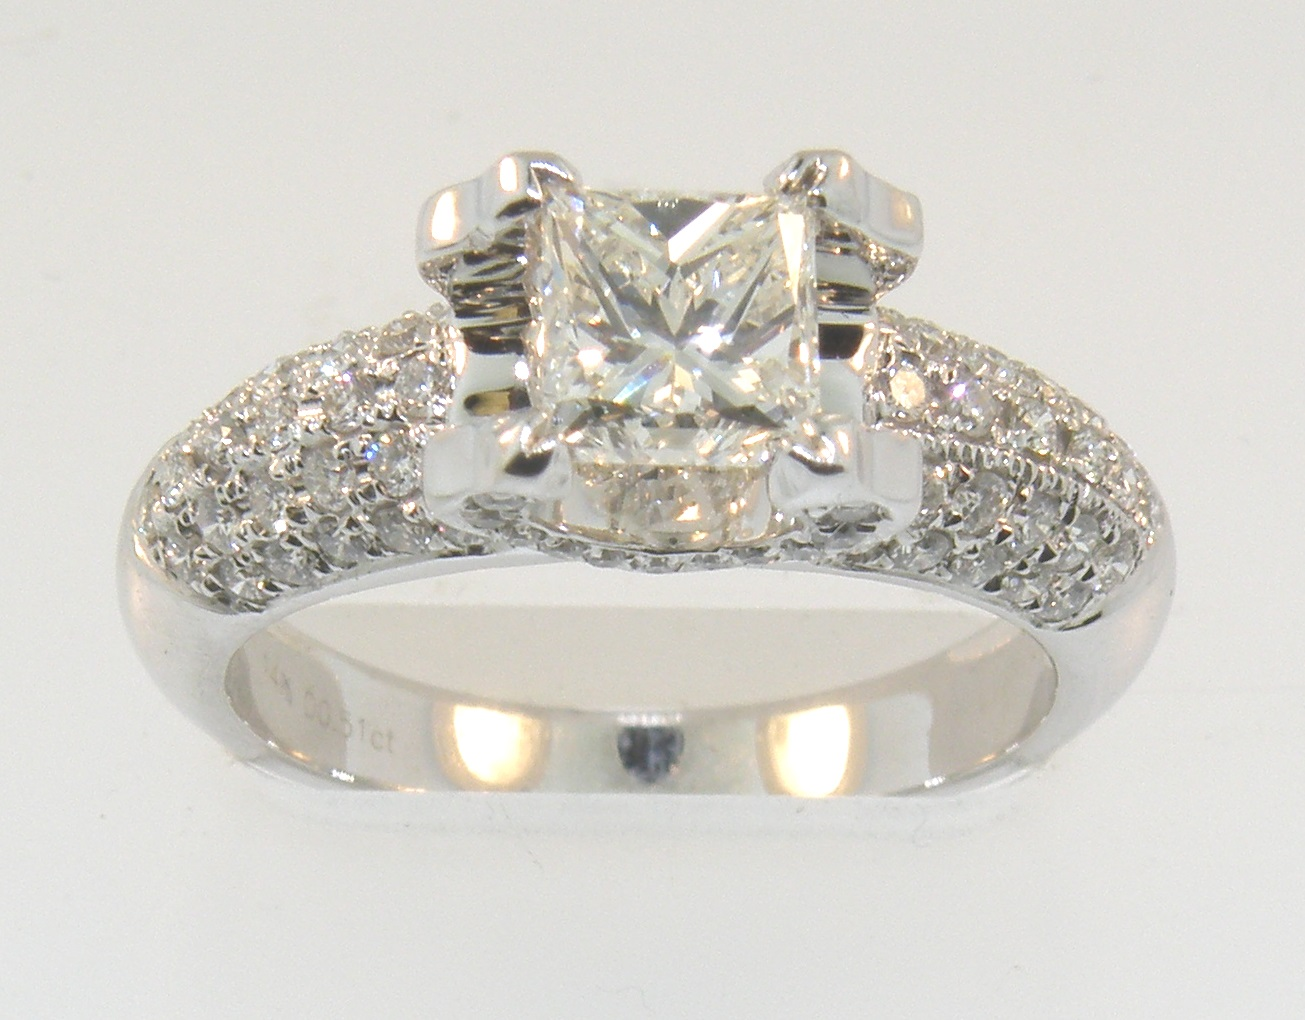 1.52 CARATS TOTAL WEIGHT DIAMOND RING